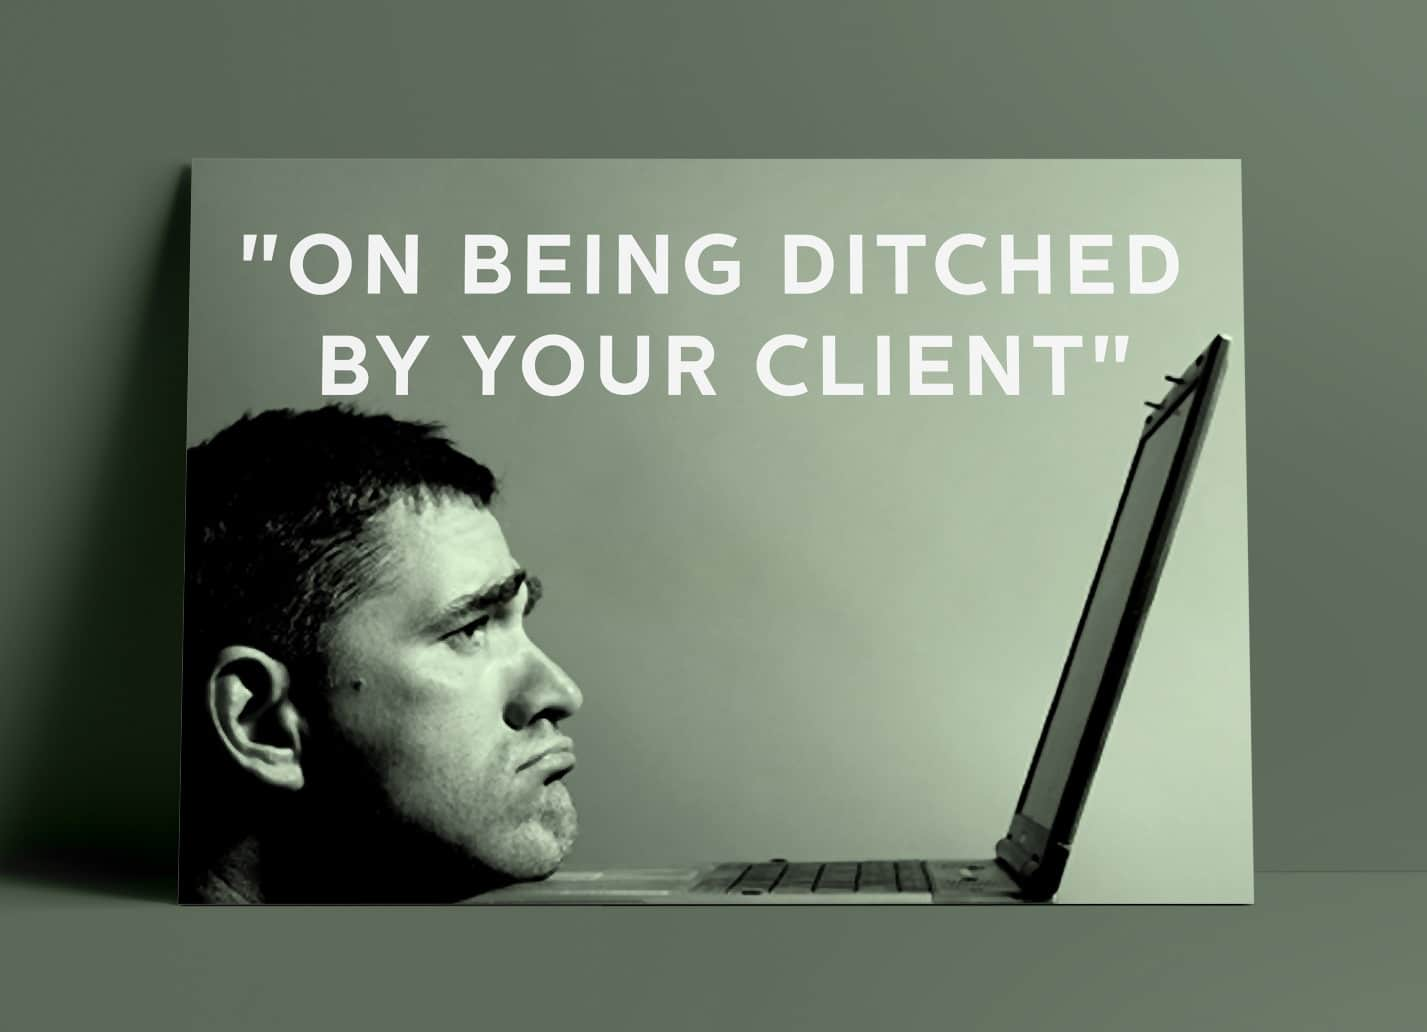 Being-ditched-by-your-client Jpg